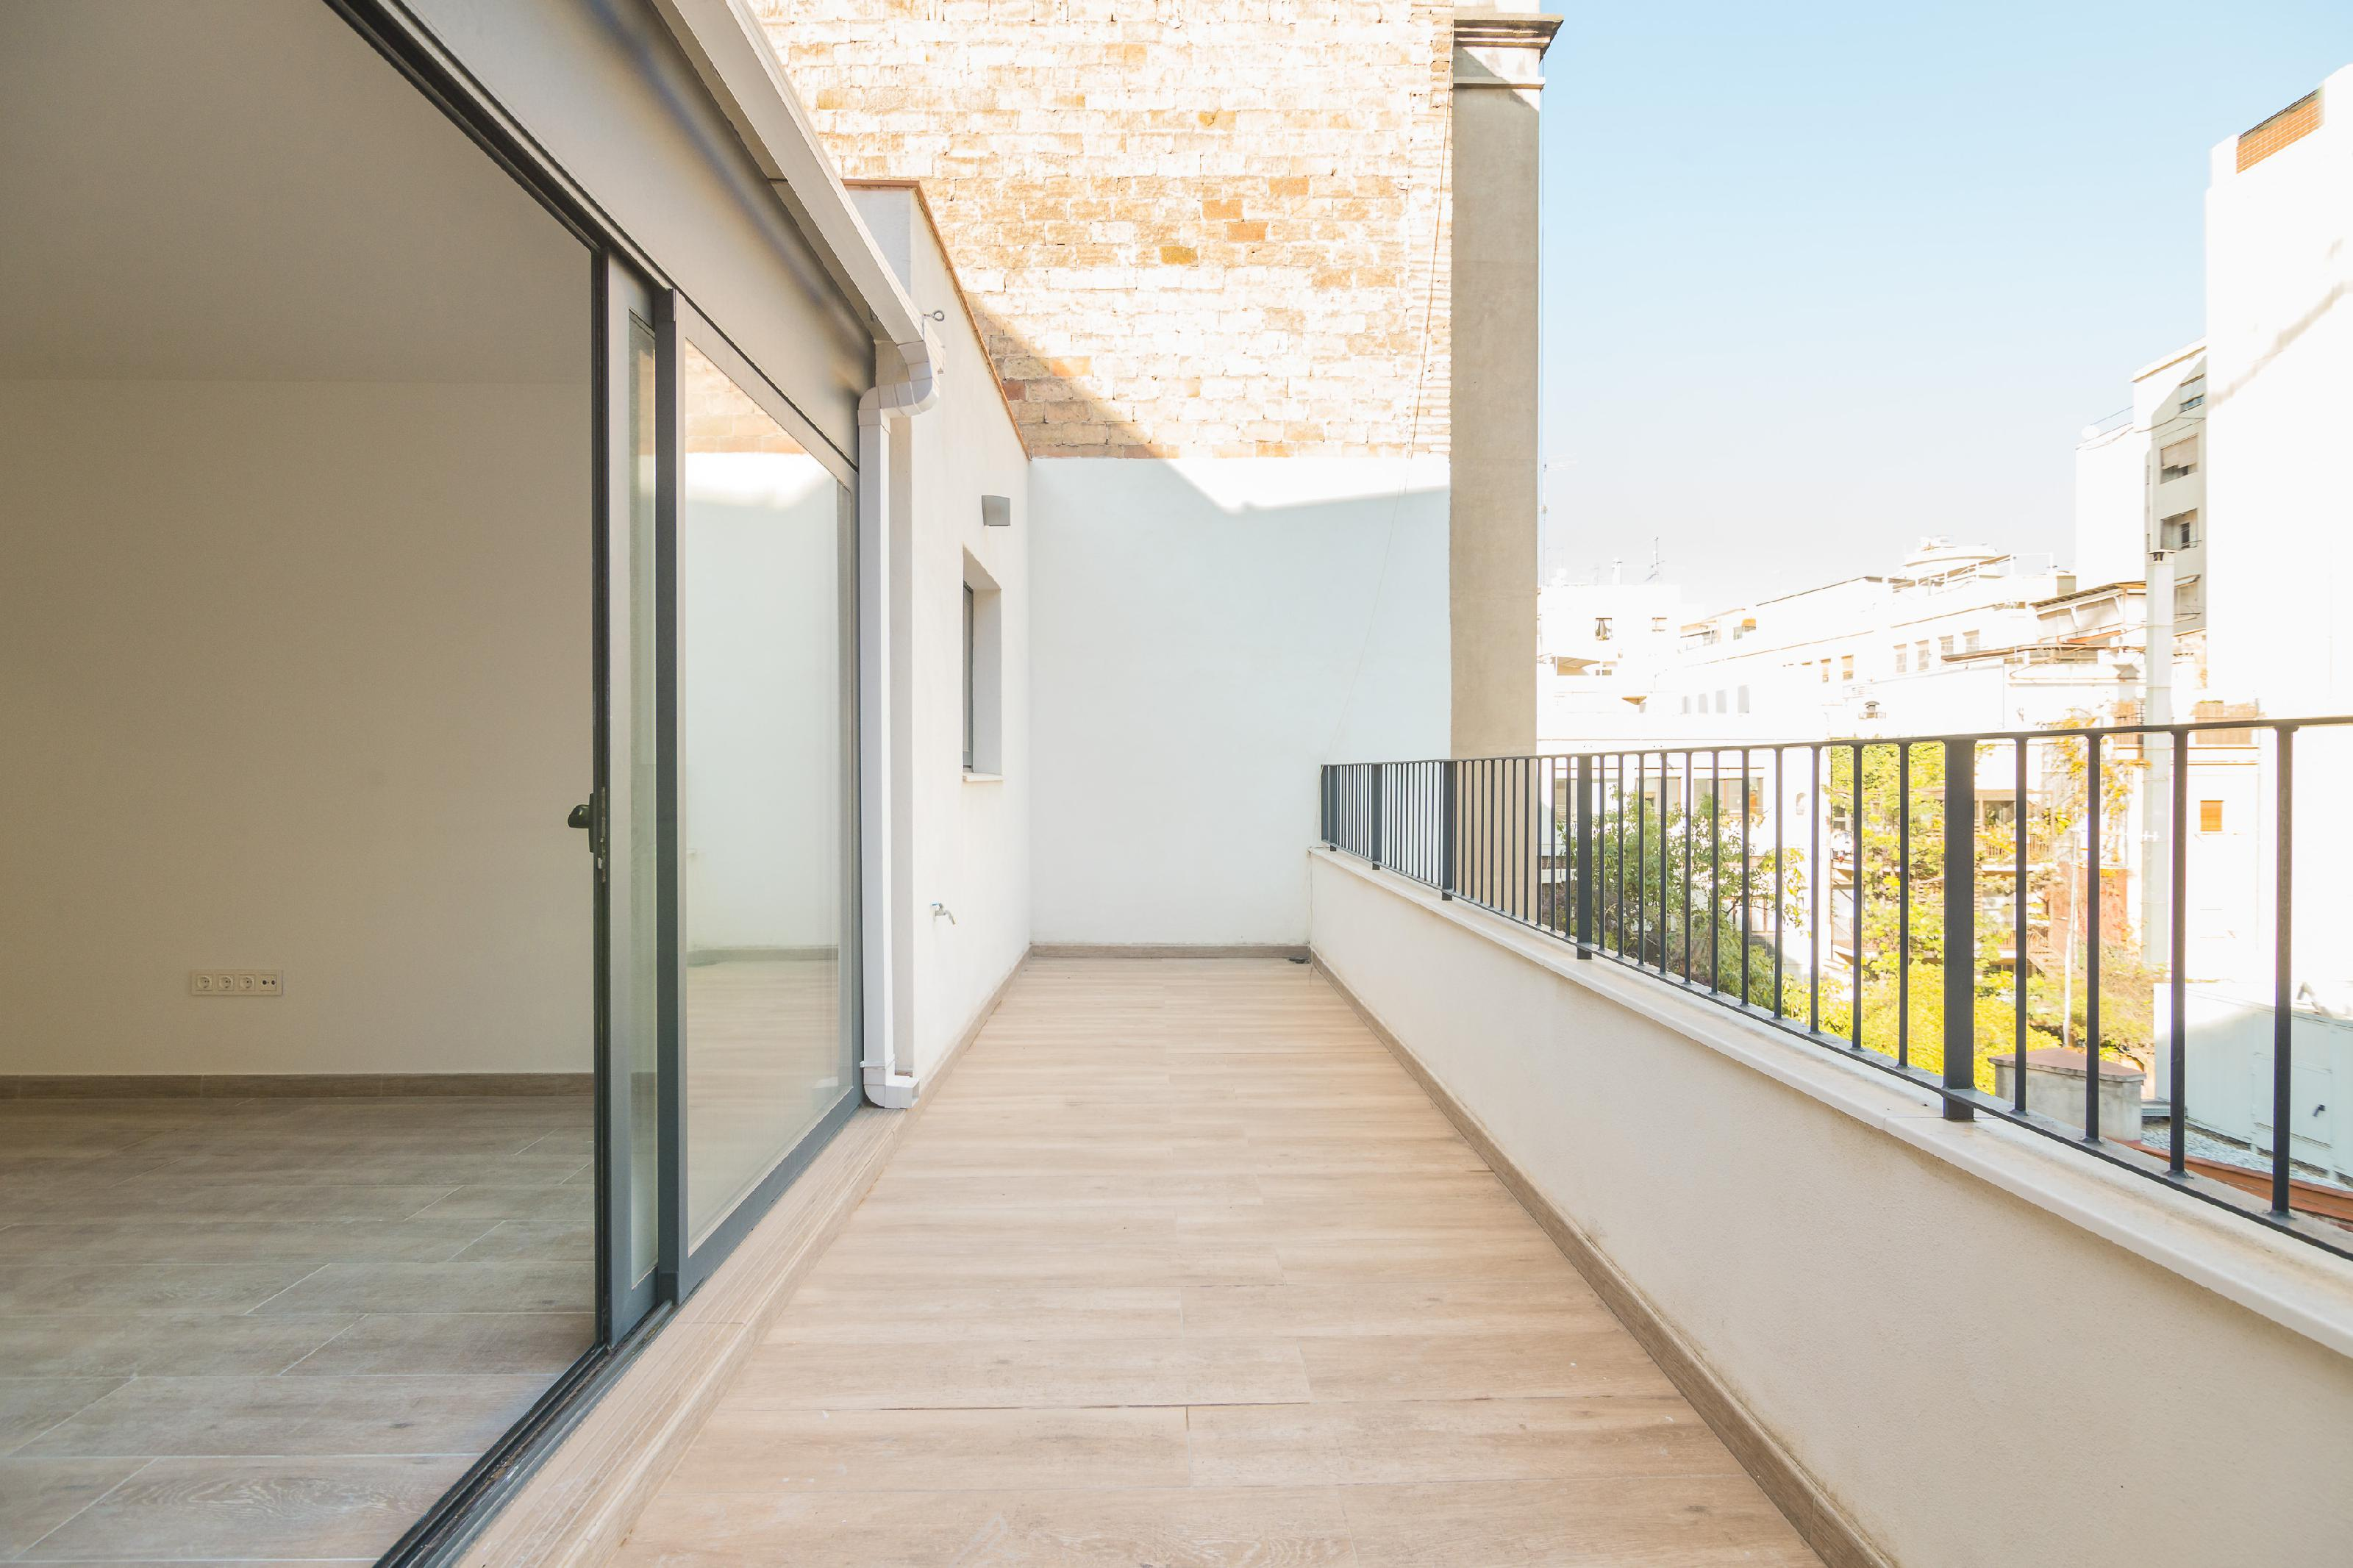 220653 Penthouse for sale in Sarrià-Sant Gervasi, Sant Gervasi-Galvany 15